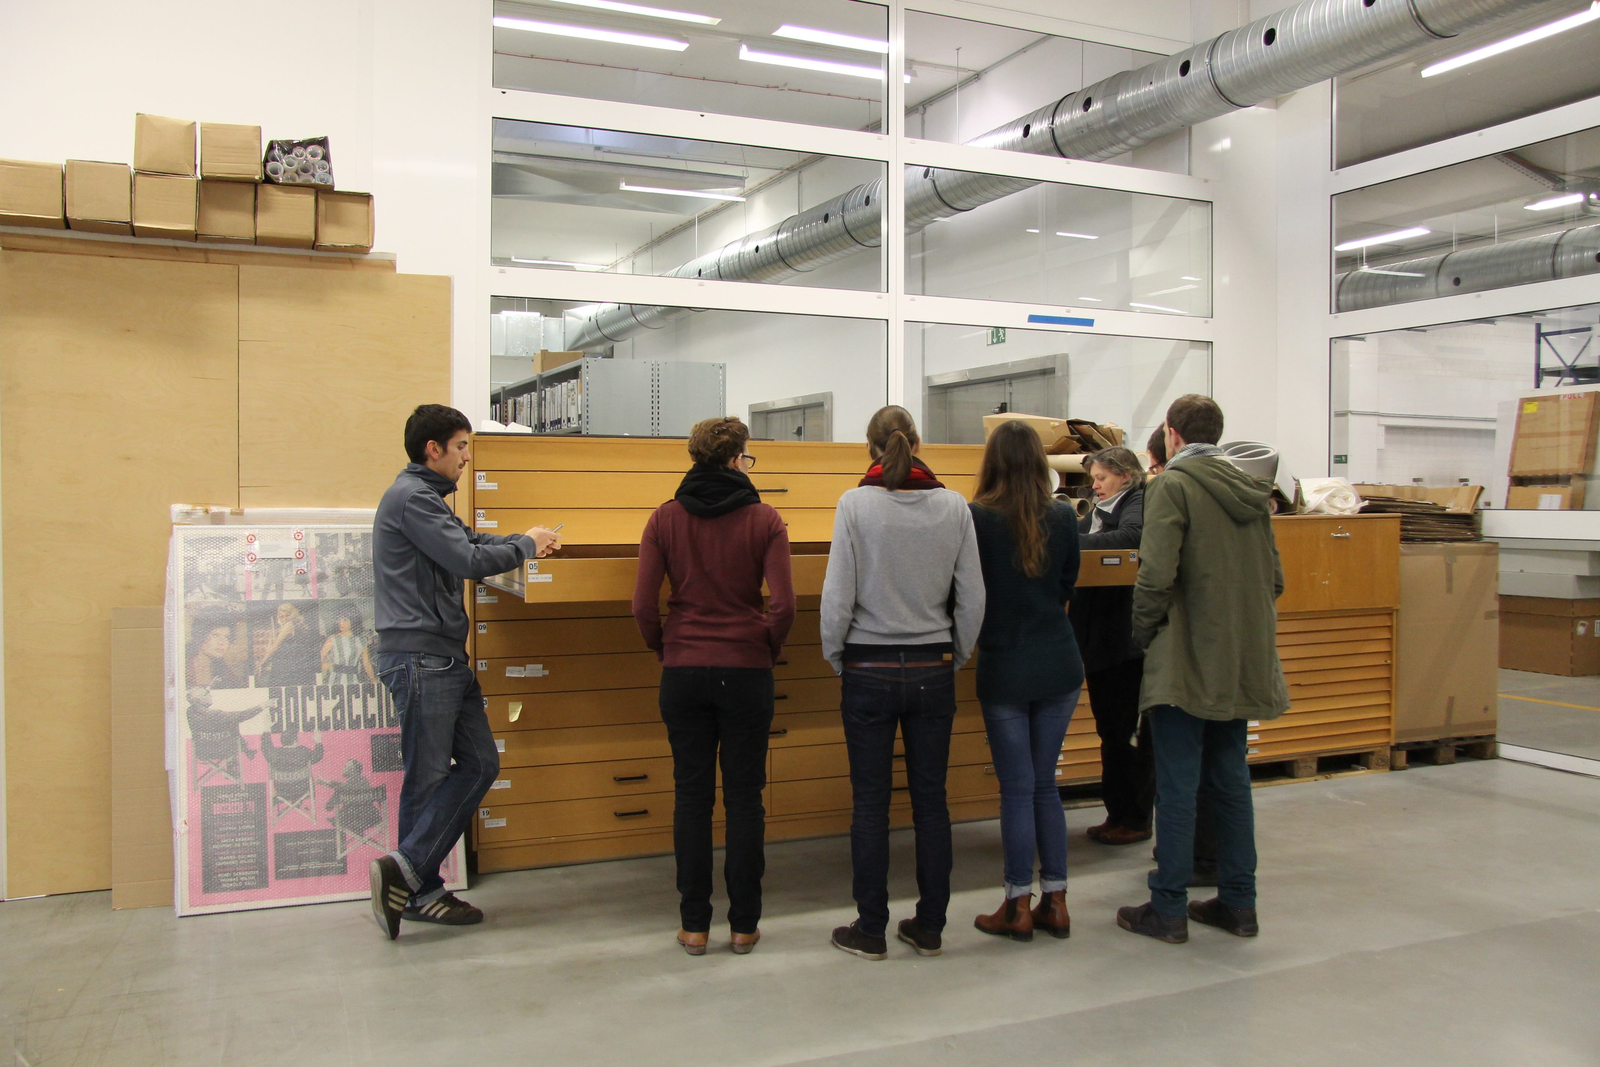 A student group during their visit in our archives